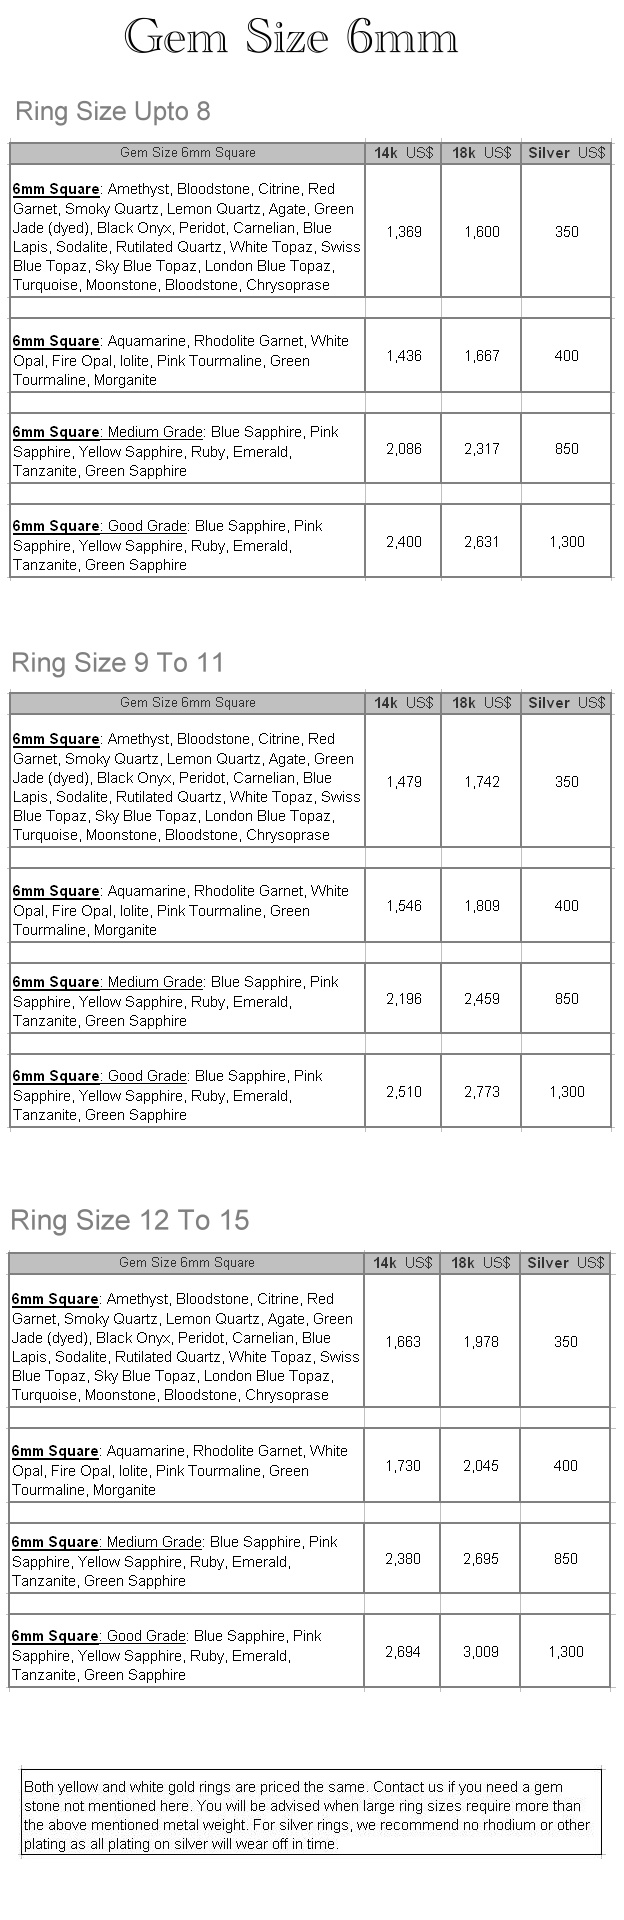 rg184 mens custom amethyst gem stone ring pricing structure